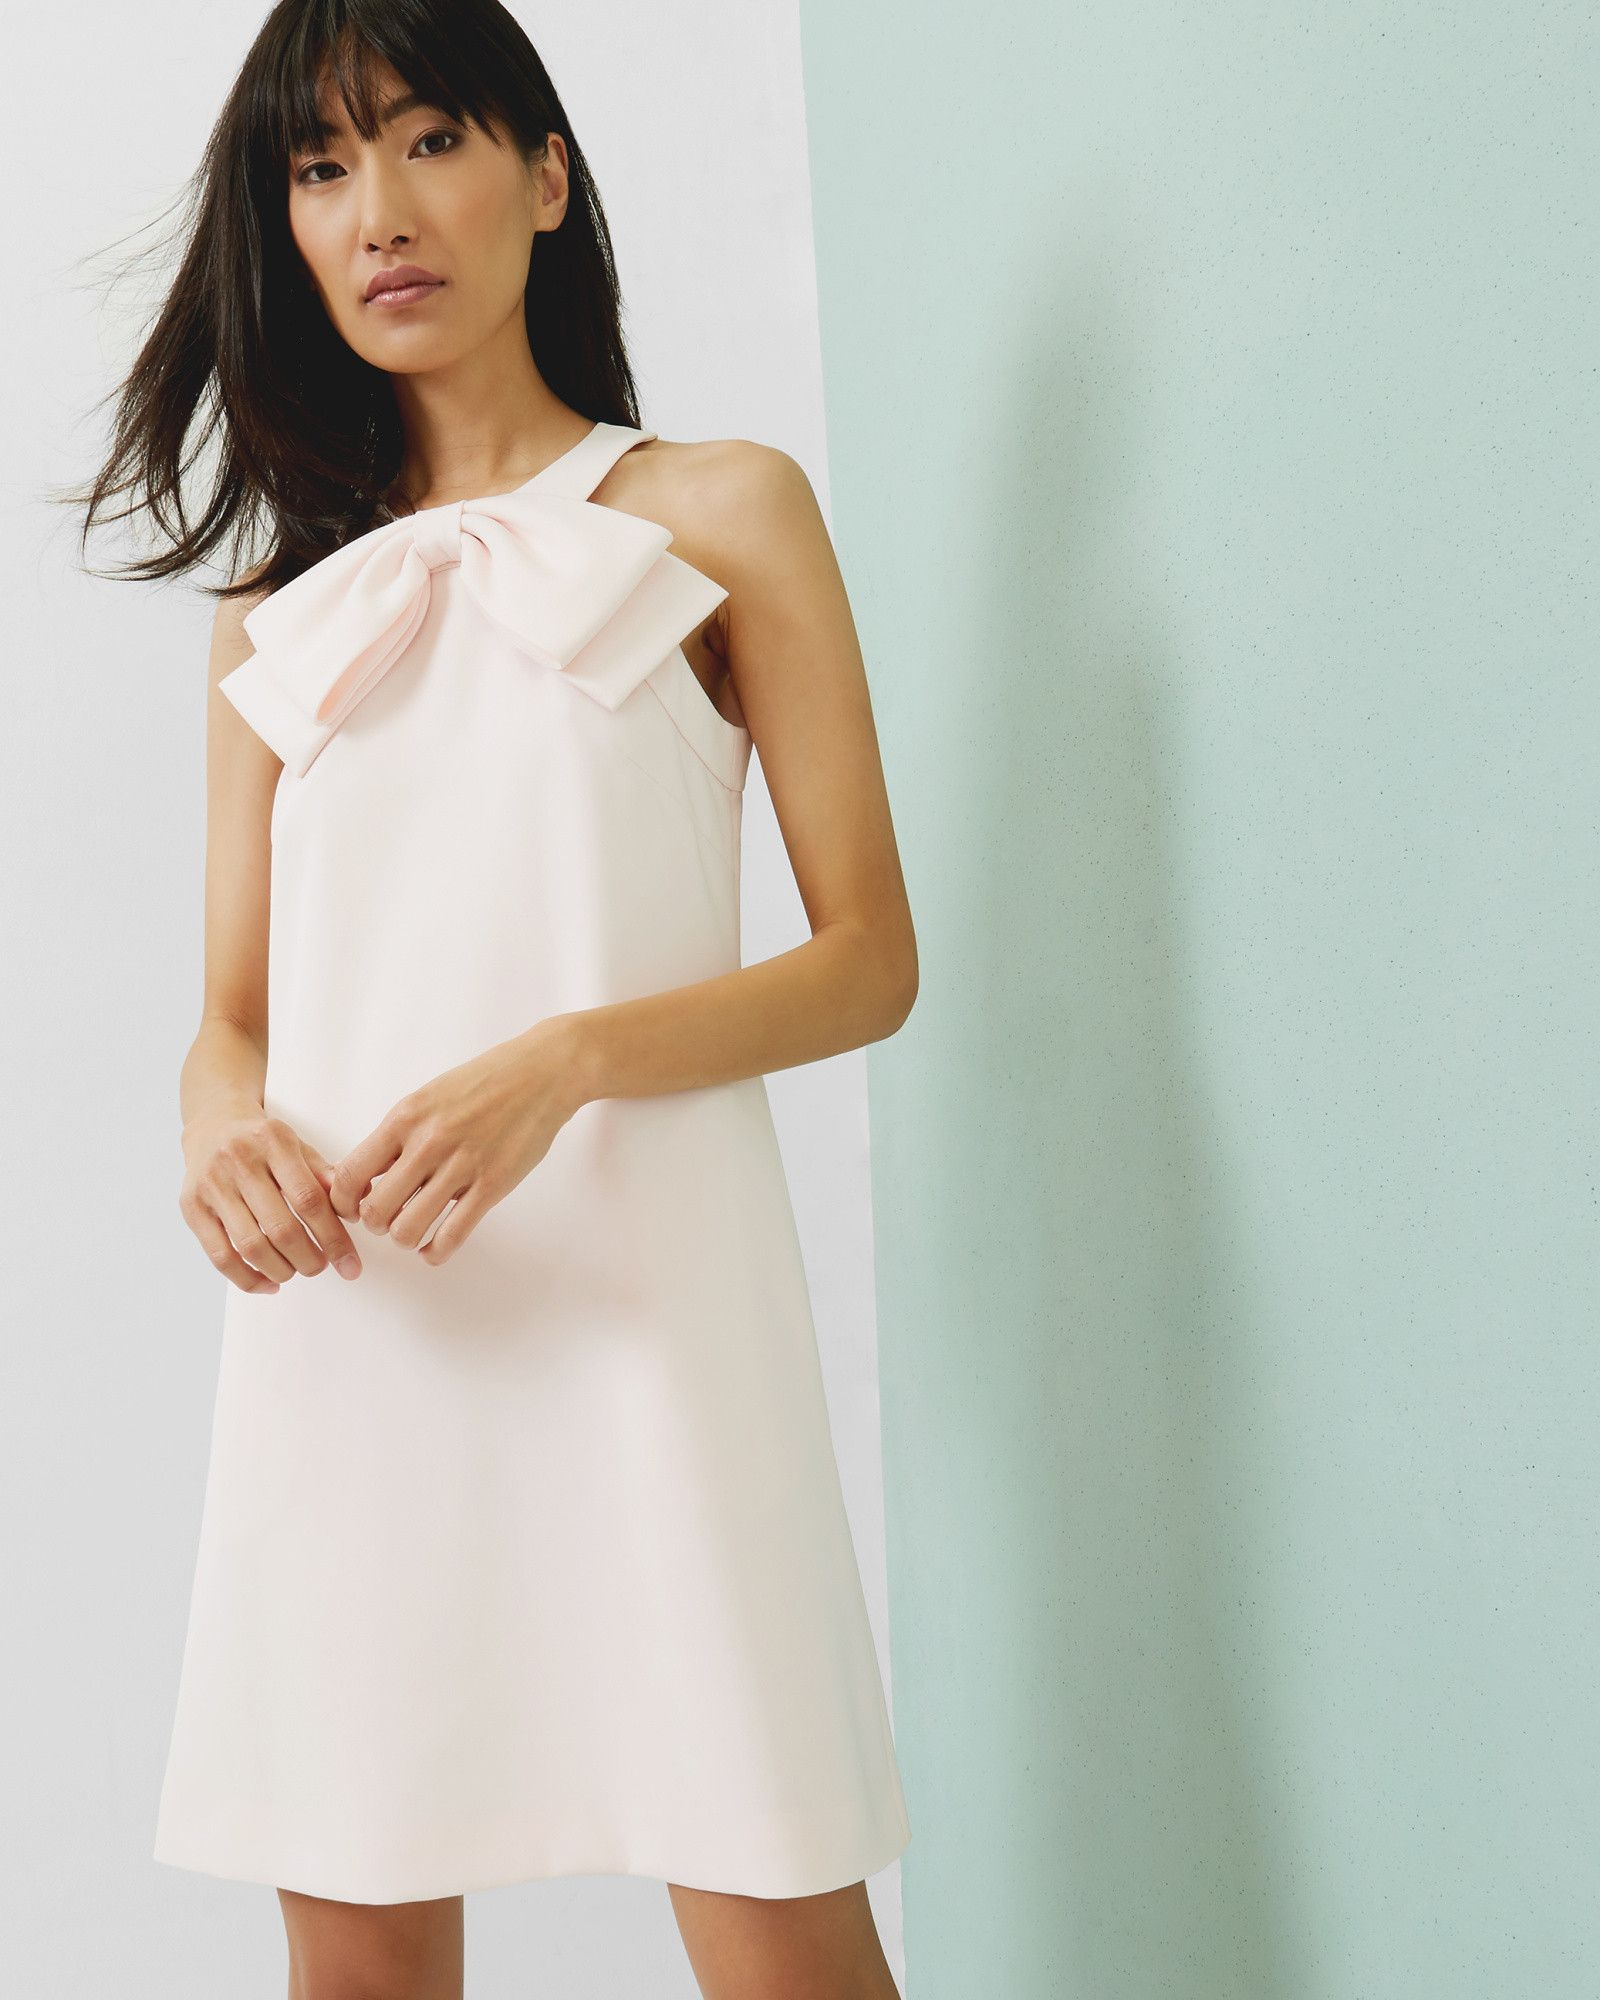 BOWTIFUL DETAILS: Ted's TRIXIA dress is a feminine and flattering choice for any bridesmaid or wedding guest. #WedWithTed @tedbaker